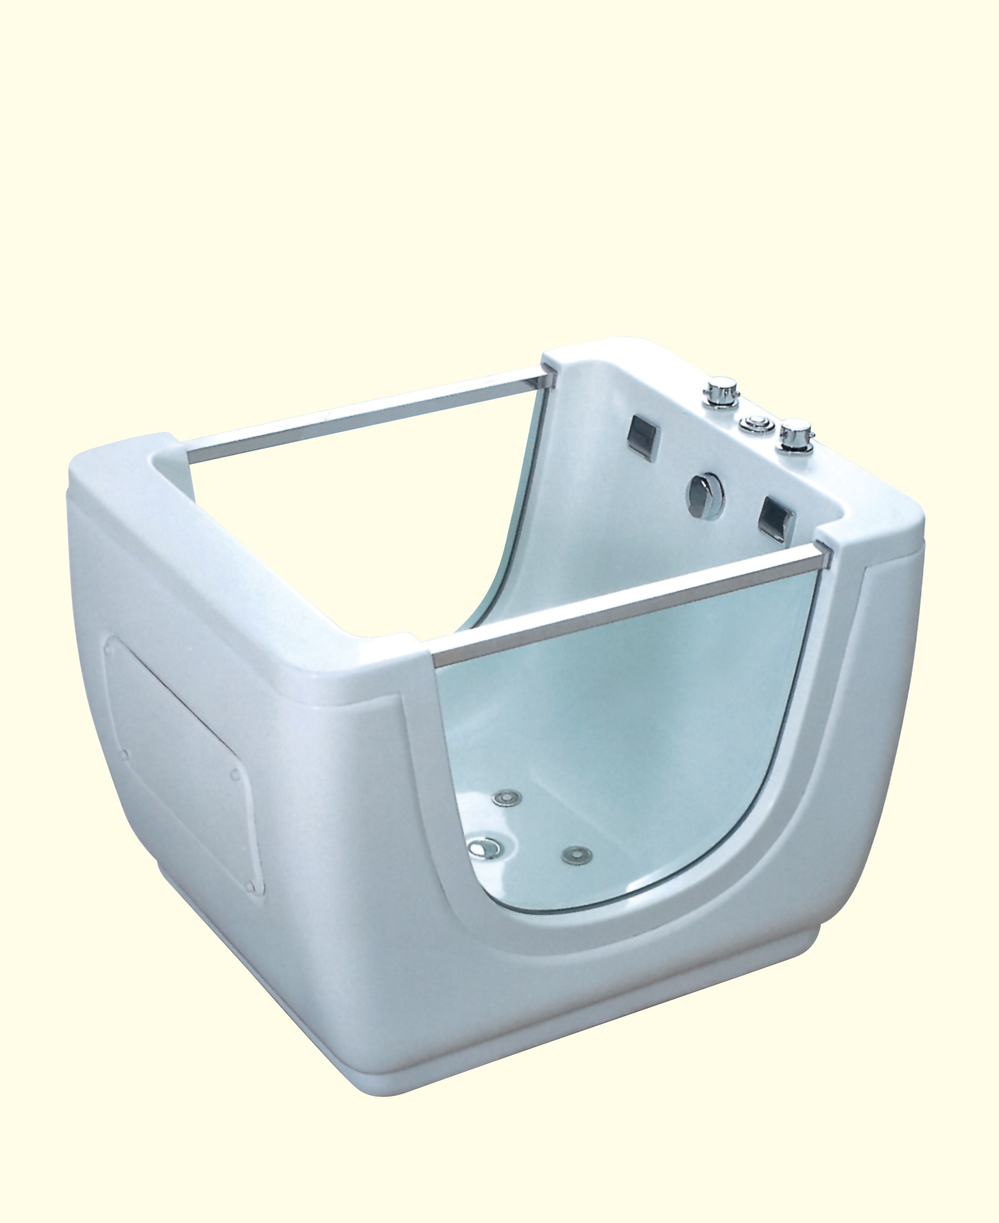 Hs-b07 Colored Kid Bubble Bath/ Small Freestanding Baby Bathtub ...